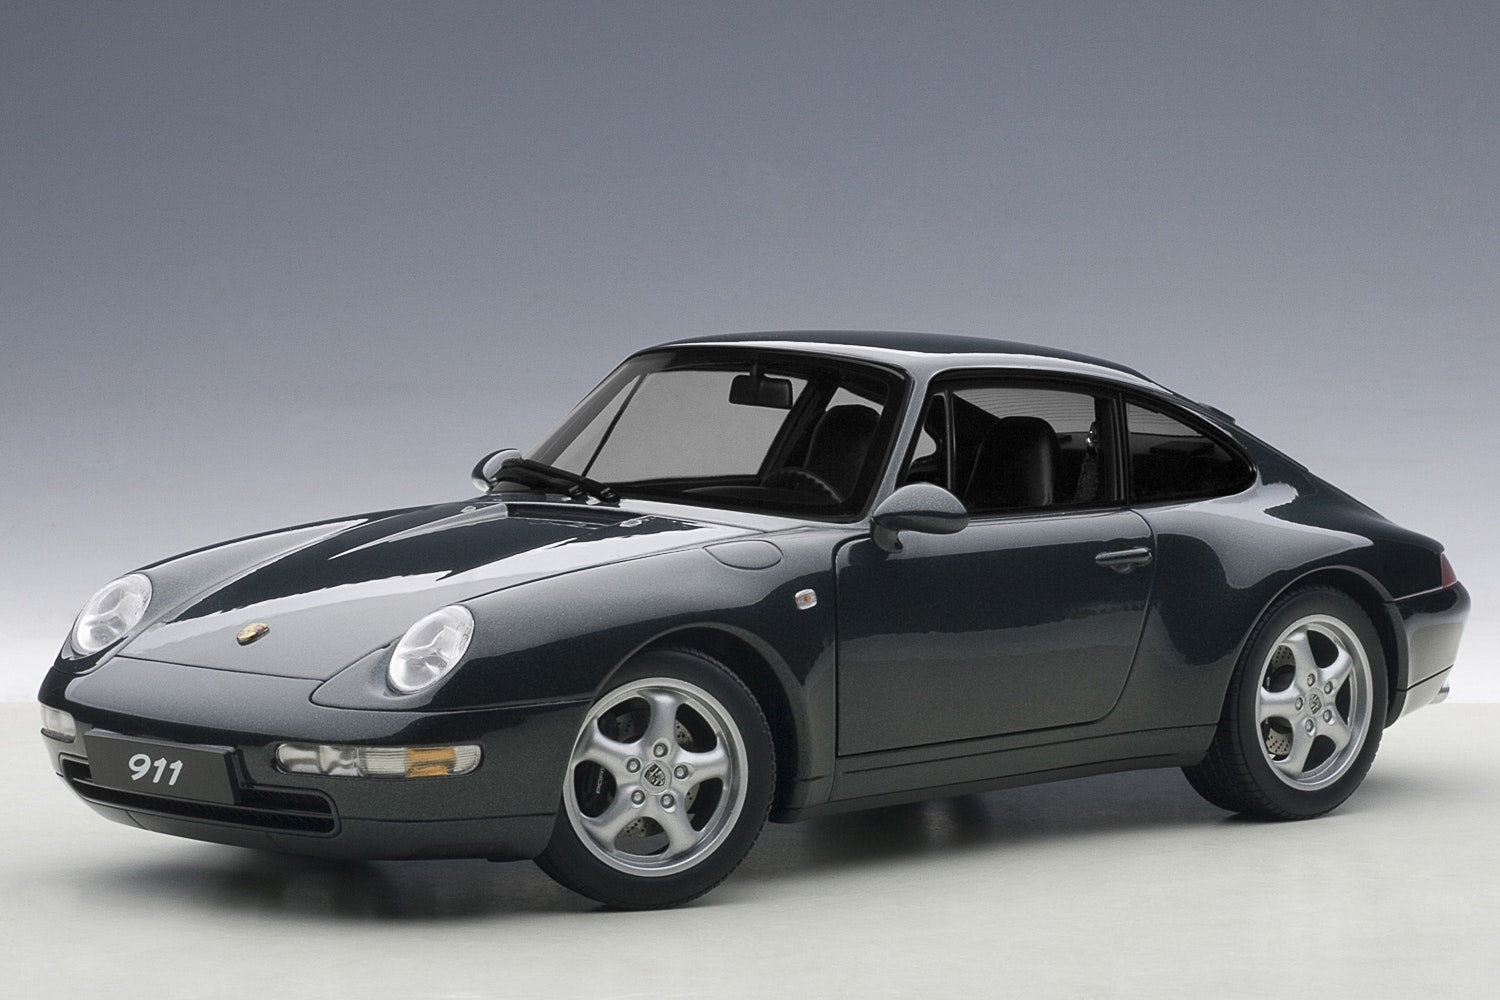 Porsche 993 Carrera 1995, Green Metallic